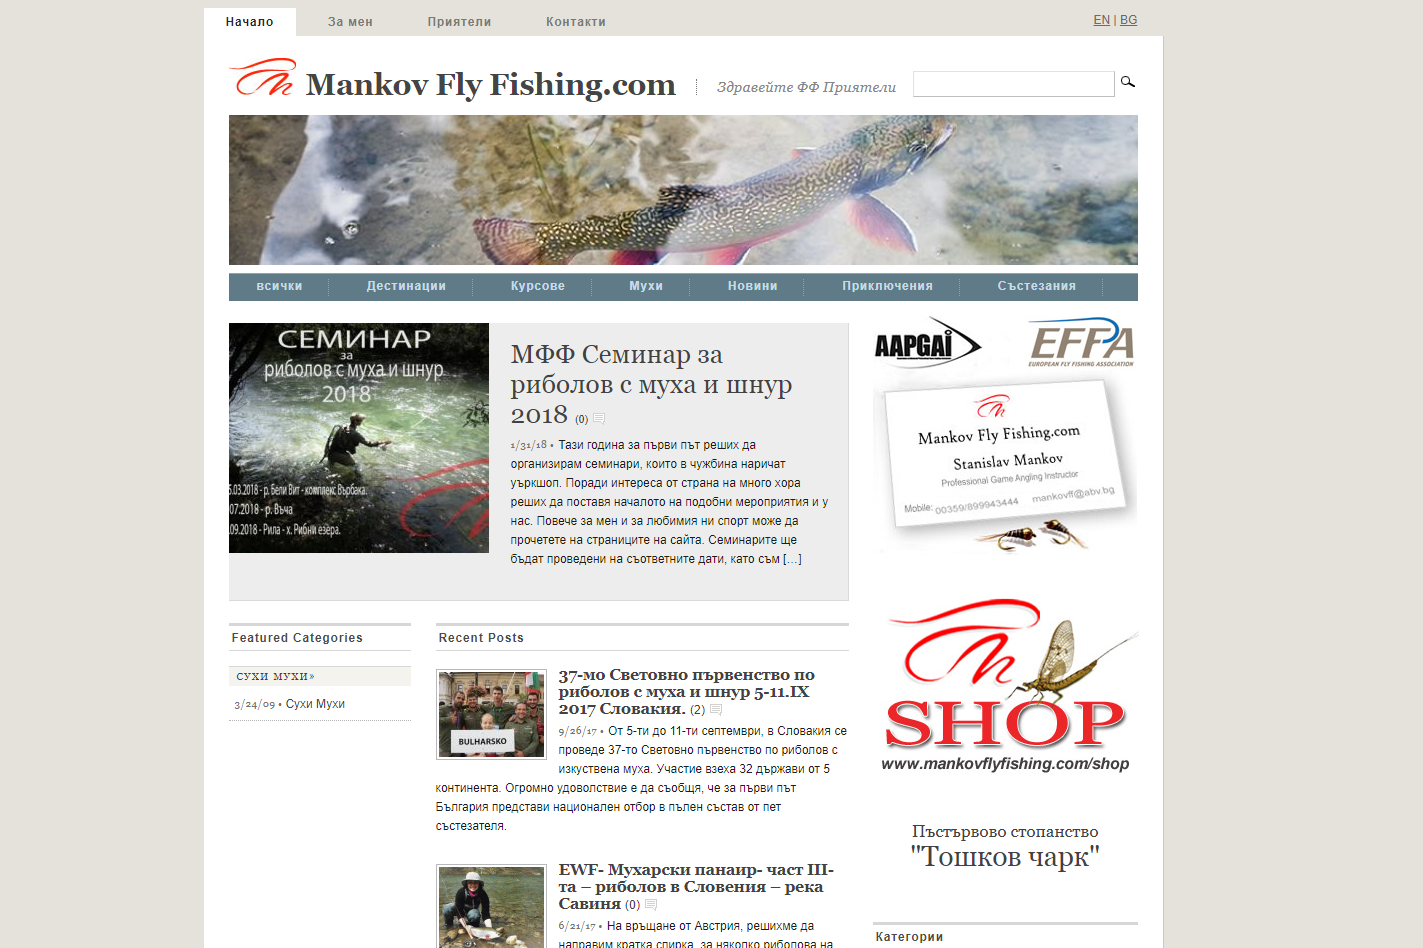 Mankovflyfishing.com